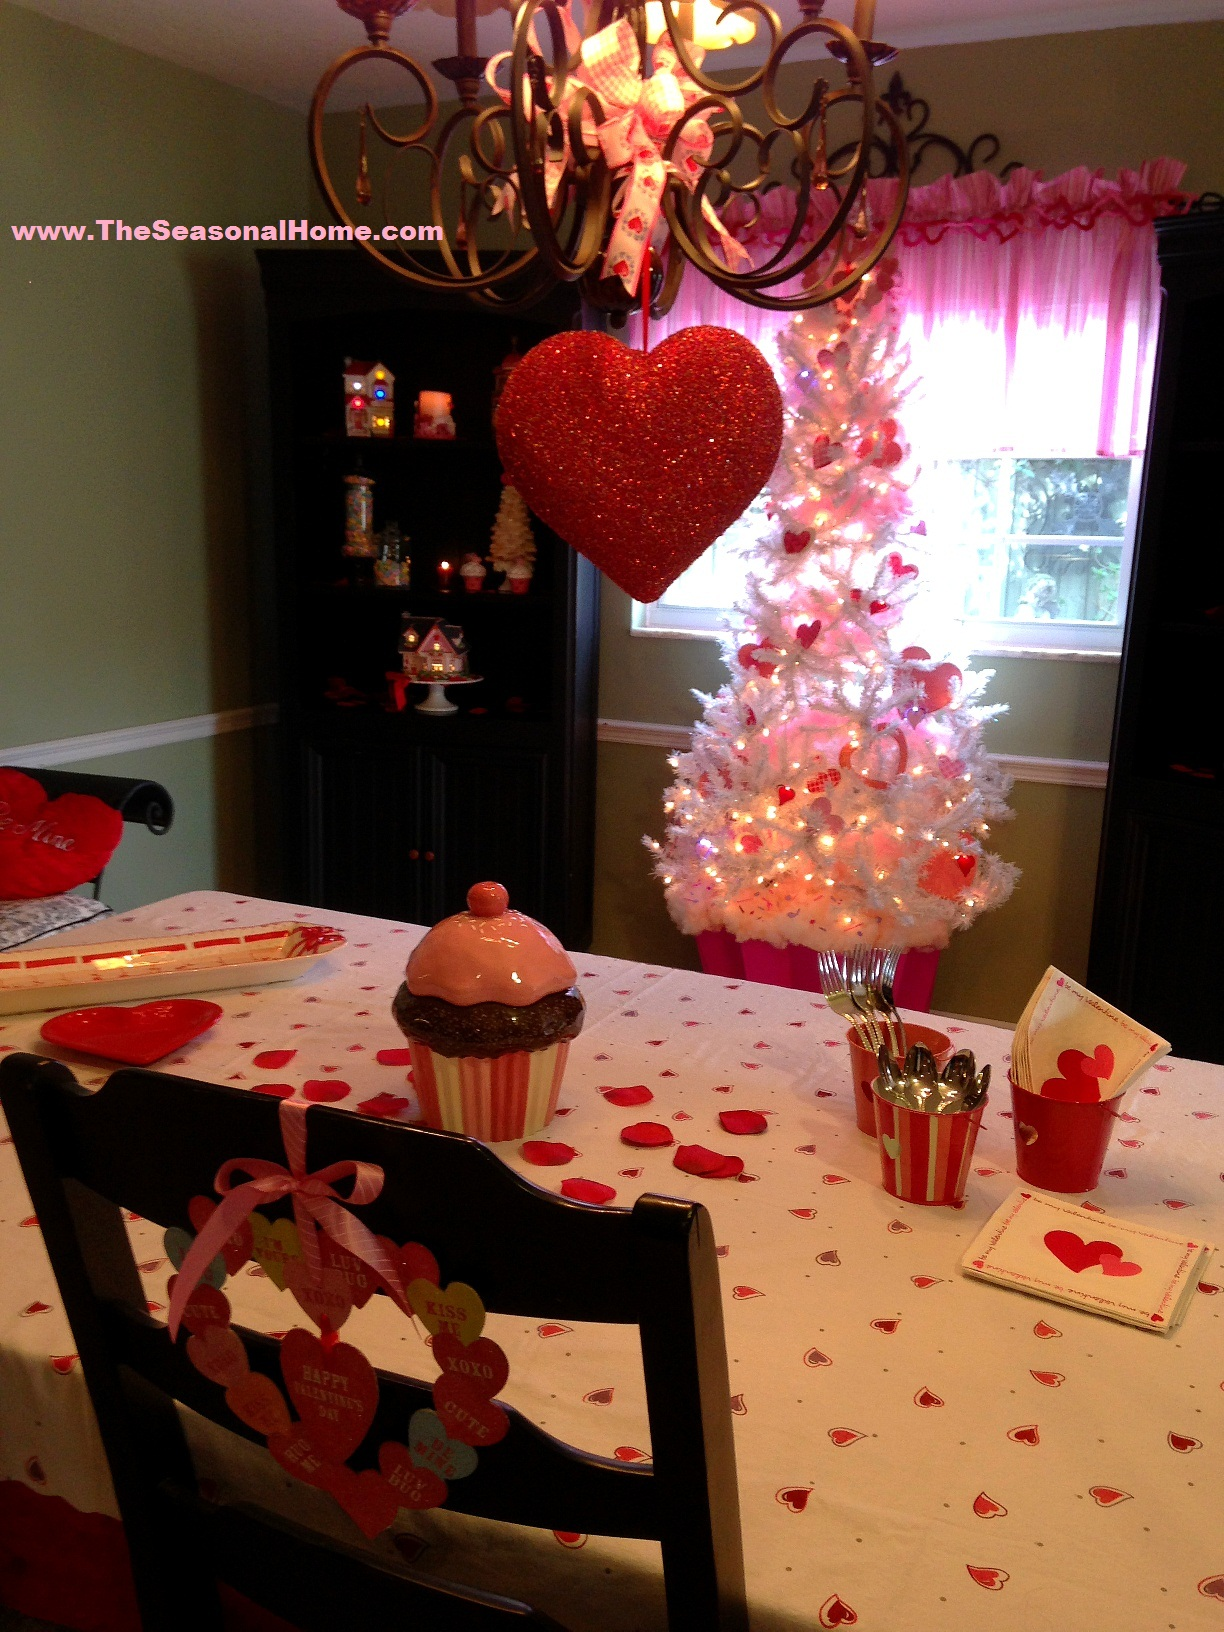 Creative Re Purposed Decorations For Valentine S Day The